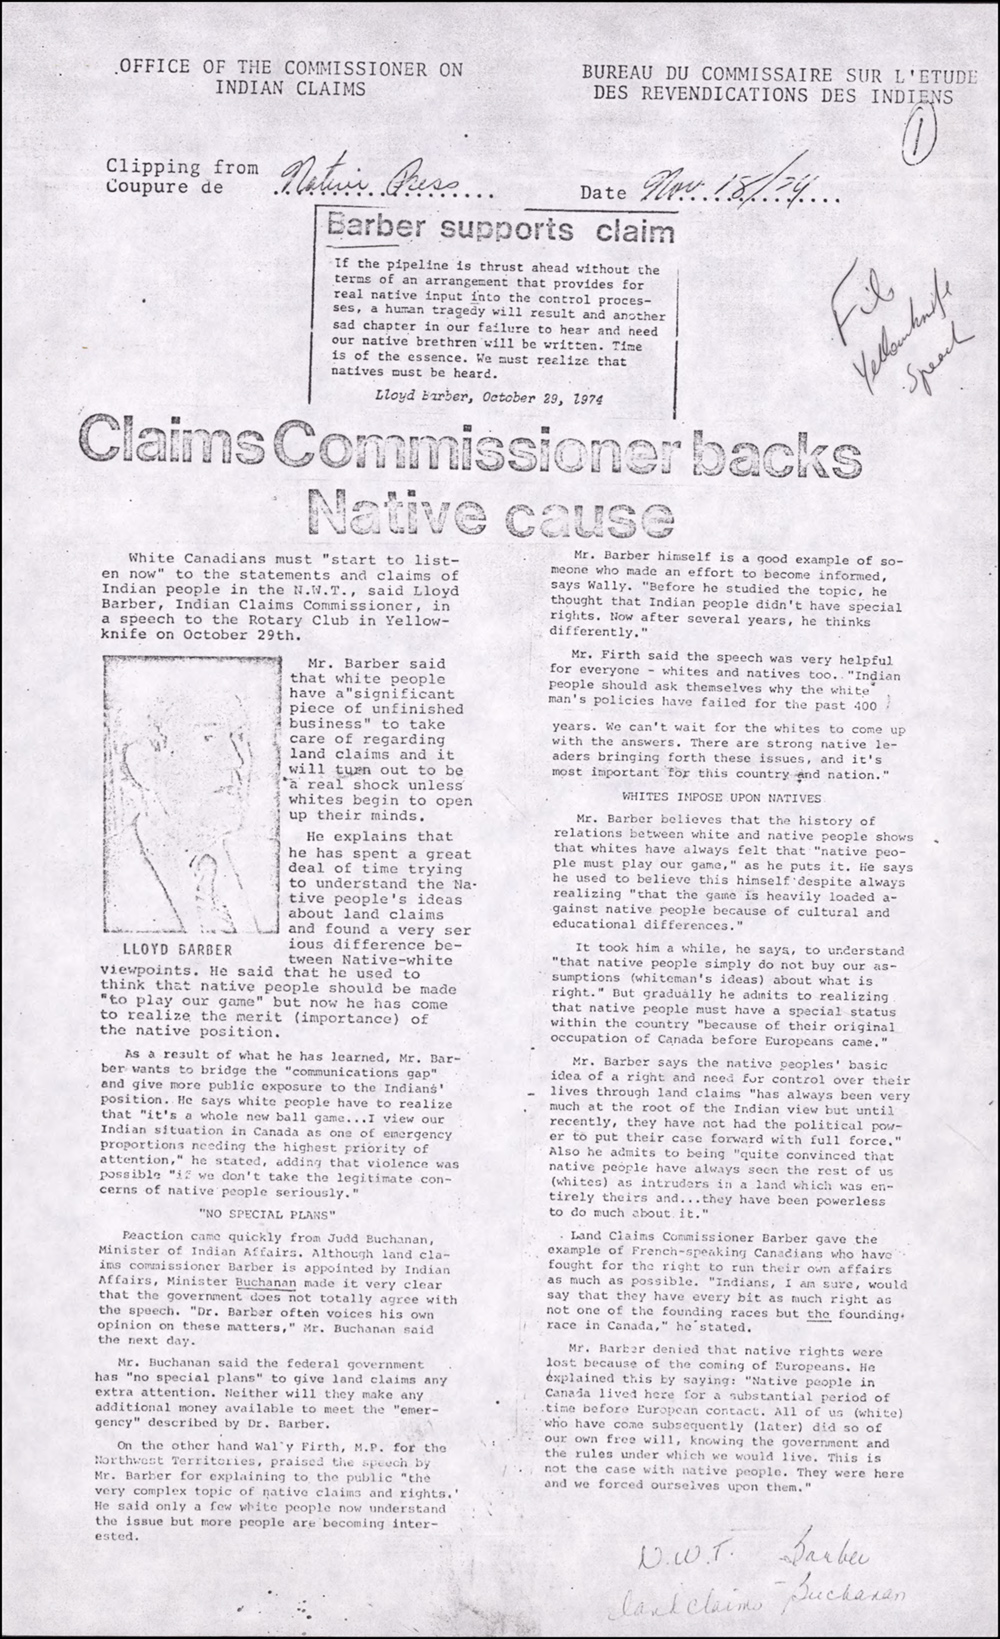 A newspaper clipping from Native Press, November 18, 1974, on Commissioner Lloyd Barber's speech in Yellowknife, which characterizes the government's assimilative approach to Indigenous status as insufficient and dangerous to pursue.